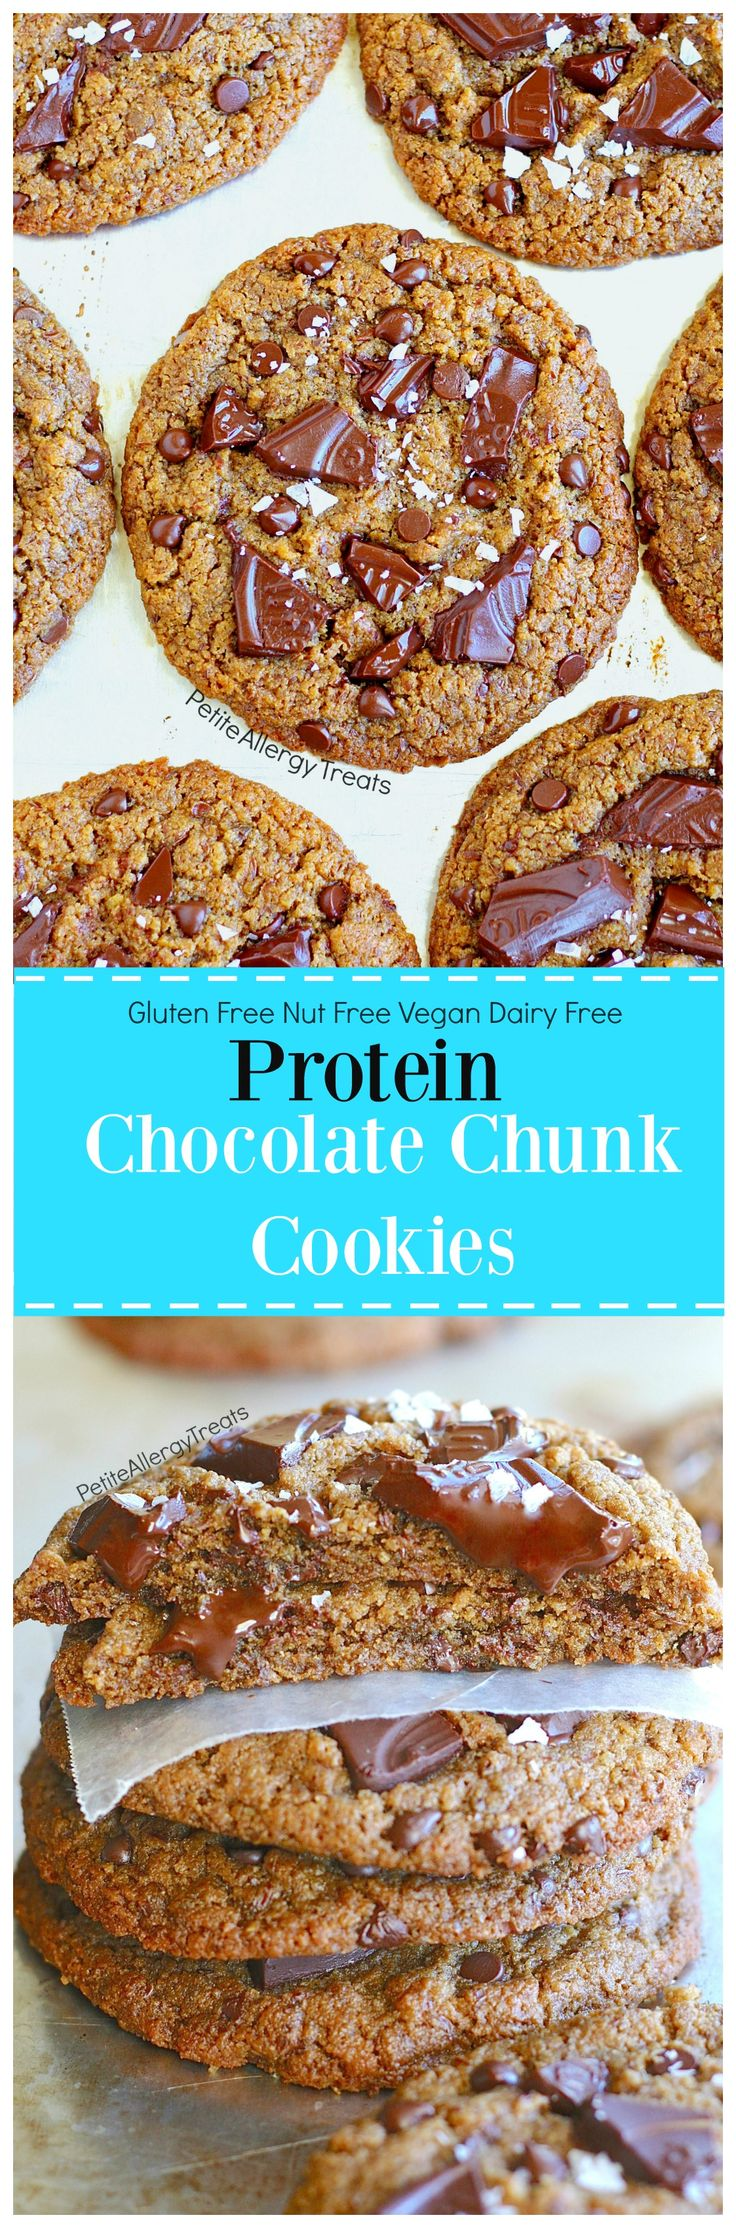 74 best enjoy life tothefullest images on pinterest gluten free gluten free chocolate chunk protein cookies forumfinder Images